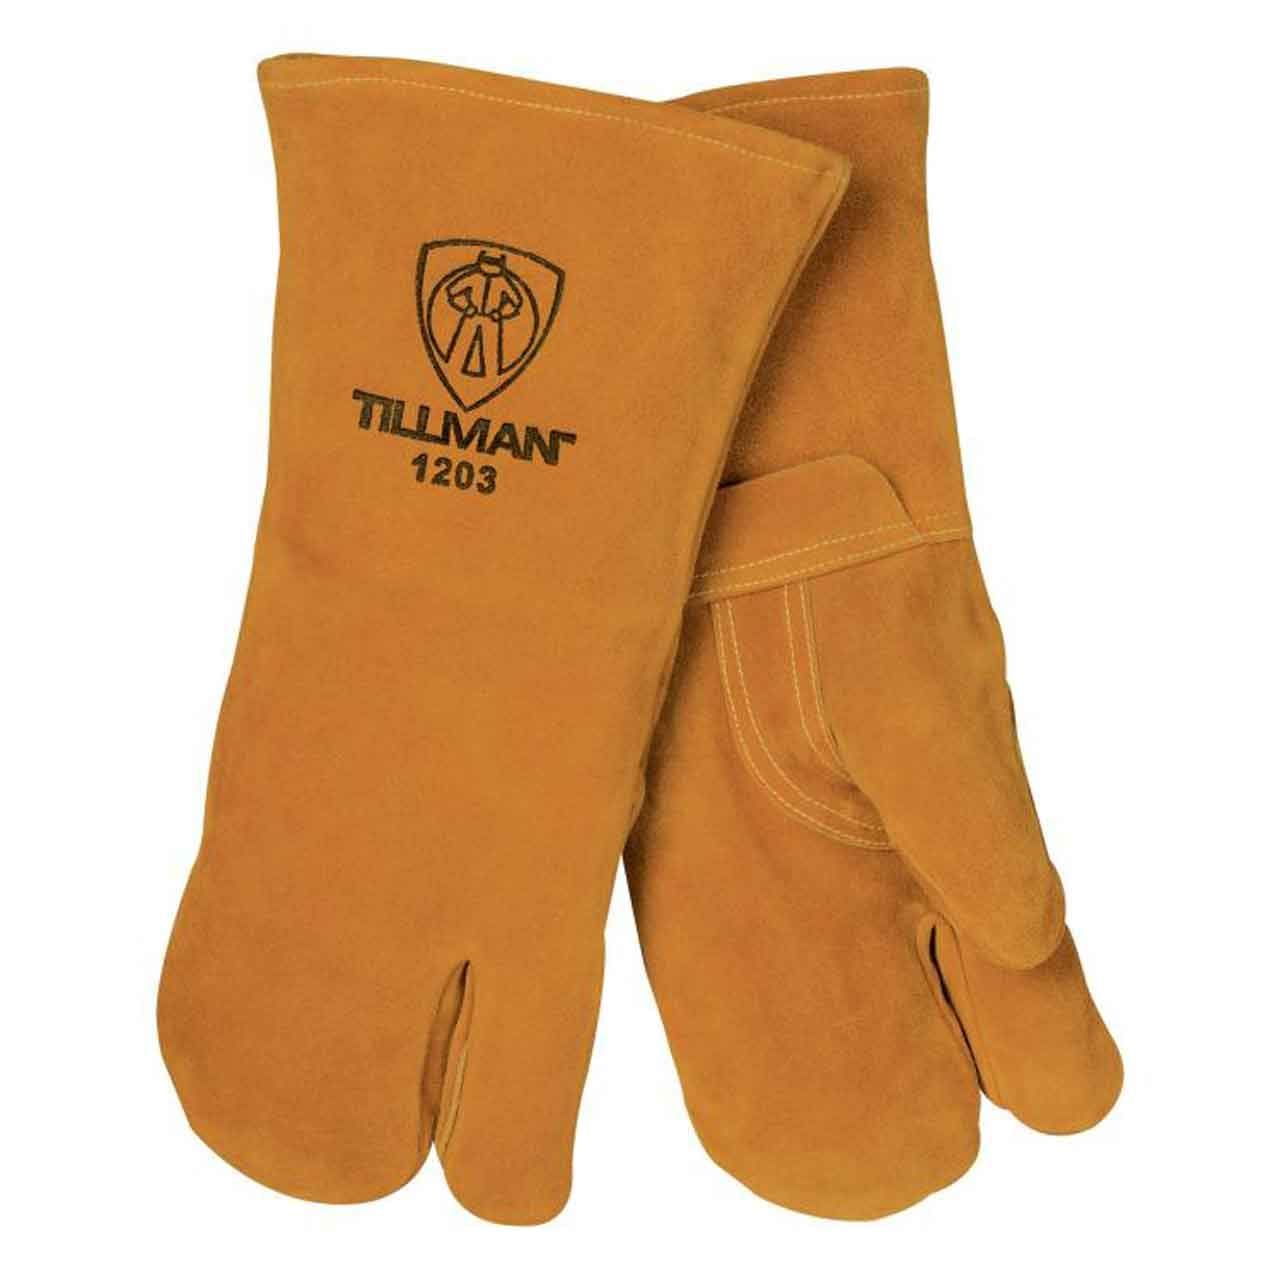 Three Fingered Tillman Welding gloves on Amazon.com. $19.99   https://www.amazon.com/Tillman-Premium-Cowhide-3-Finger-Welding/dp/B003GM83IA/ref=sr_1_8?keywords=Three+finger+welding+gloves&qid=1556723449&s=gateway&sr=8-8   These three fingered Tillman gloves kind of act as reverse mittens, dissapating heat around each finger. I have had too many fingers on welding gloves get really hot and bend backwards rendering them unusable, or had to remove my hand from the glove while it cools down. Never have I had to do this with these gloves. The three finger thing takes a little getting used to, and most people love them or hate them. I believe they last longer because they dont wear through a single finger near as fast.